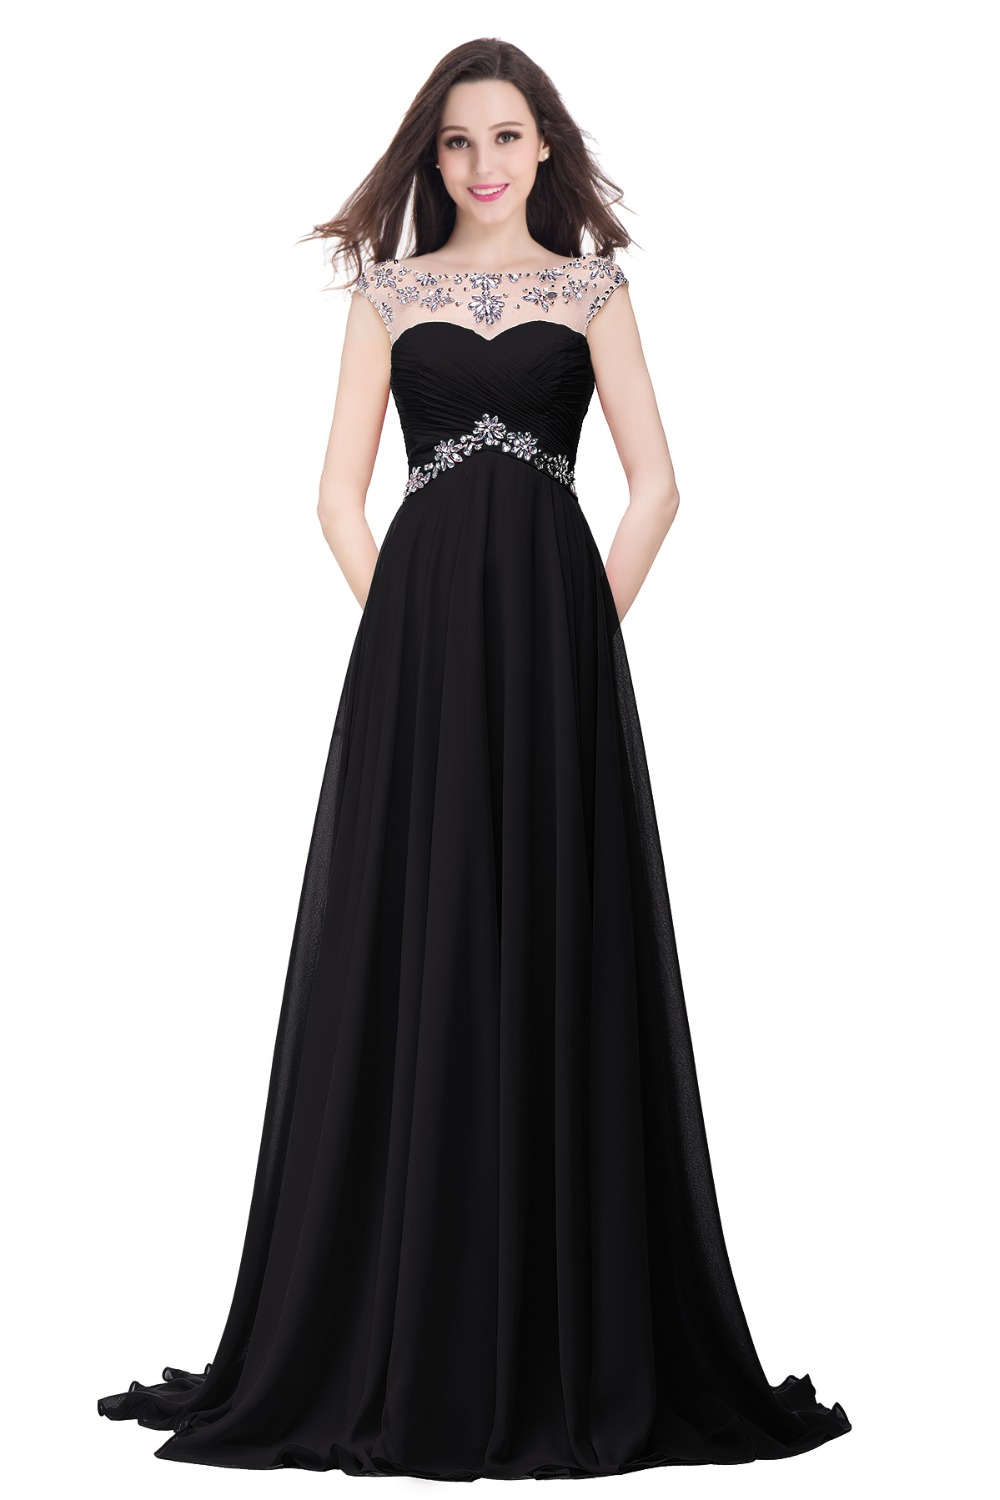 Cheap Prom Dresses Under 50 Dollars Ficts